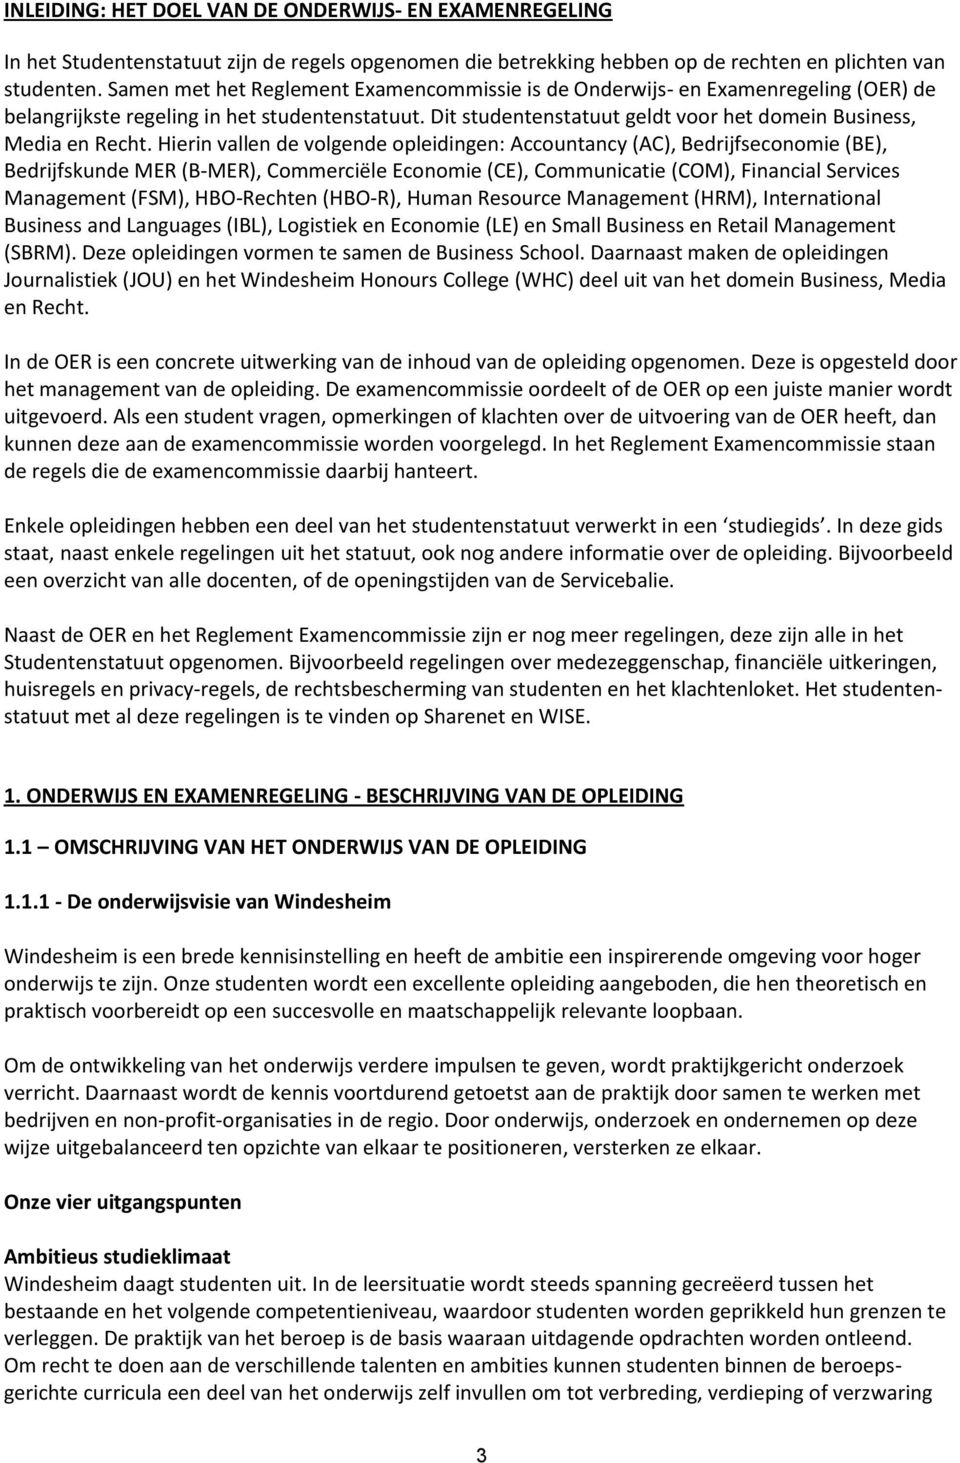 Hierin vallen de volgende opleidingen: Accountancy (AC), Bedrijfseconomie (BE), Bedrijfskunde MER (B-MER), Commerciële Economie (CE), Communicatie (COM), Financial Services Management (FSM),